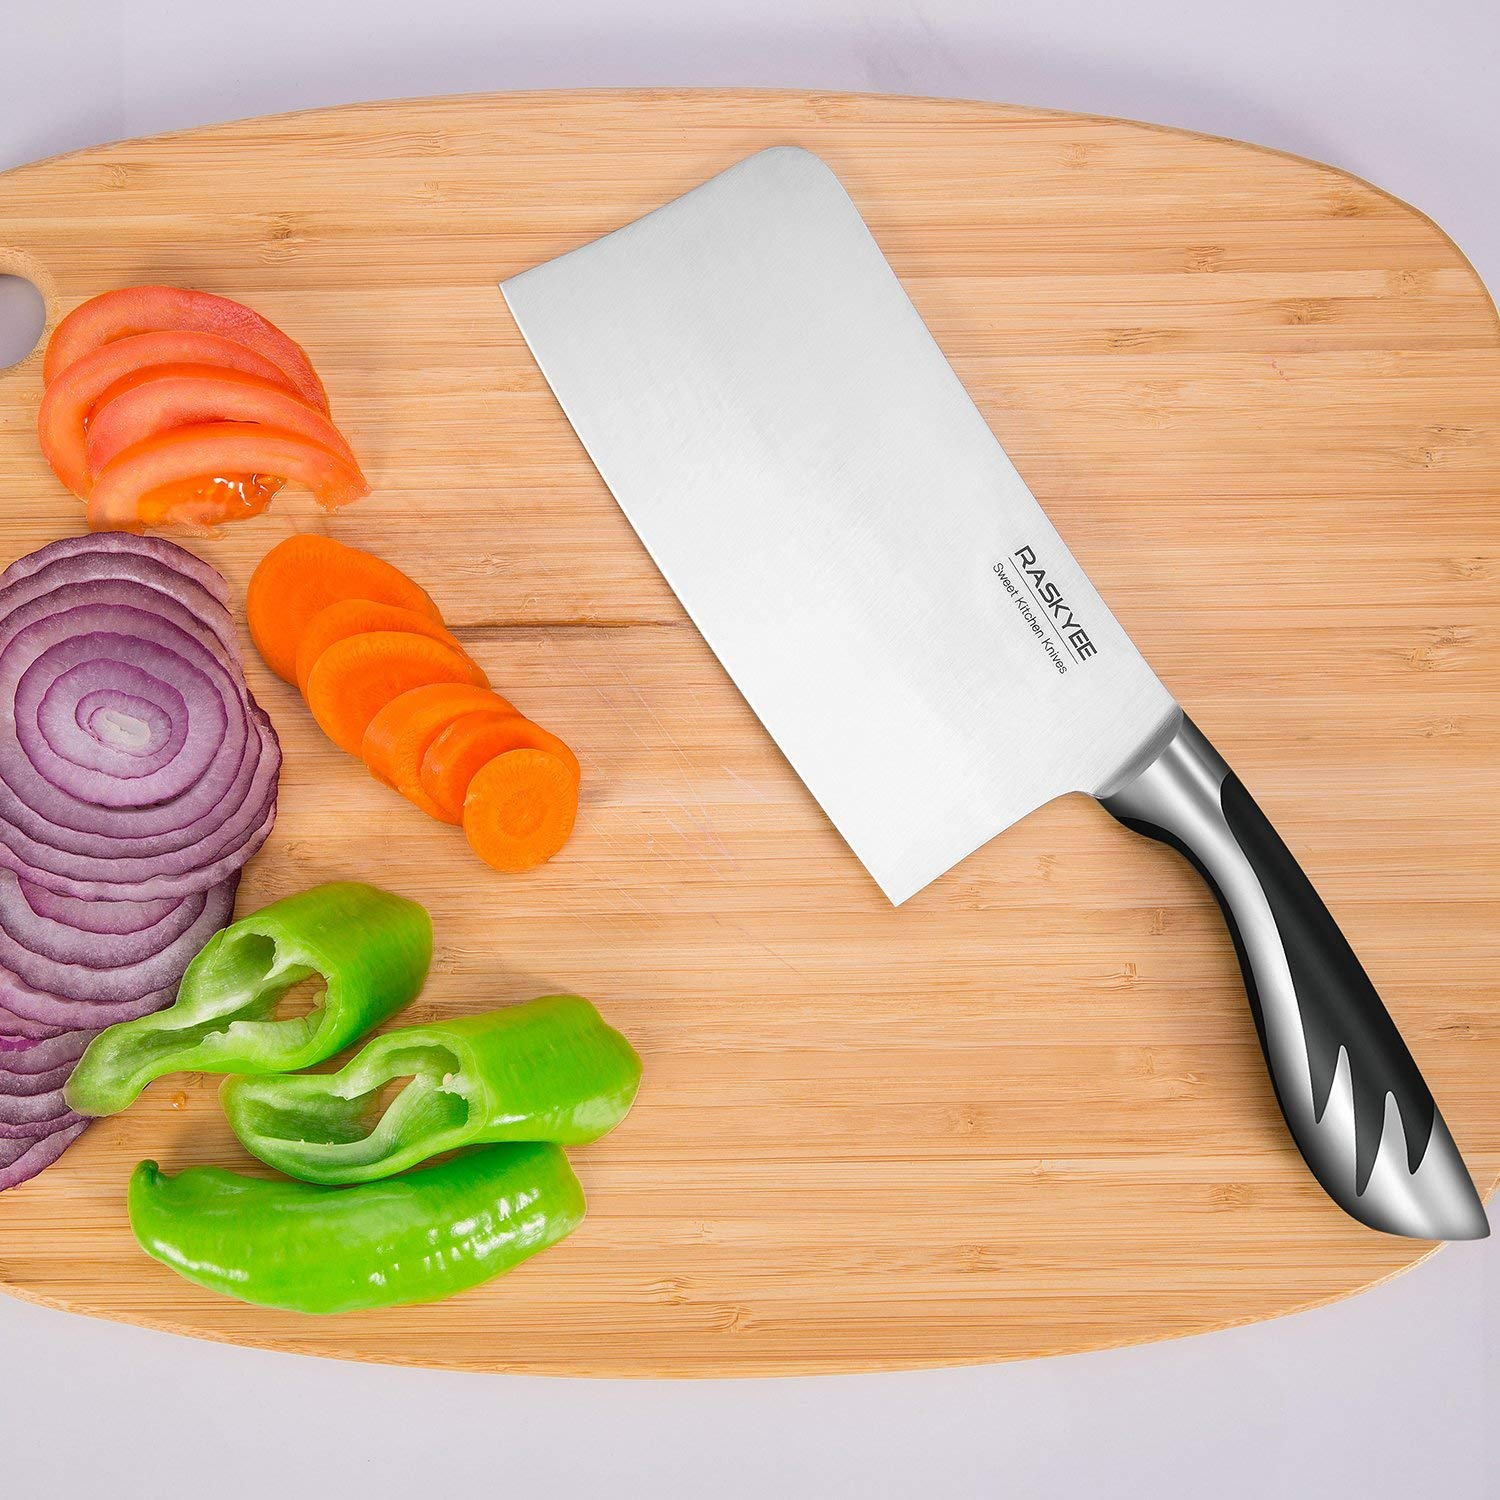 Raskyee Pro 7 inch Kitchen Chef Knife -German Stainless Steel- Razor Sharp Blade & Easy Grip Handle Chopping, Carving & Slicing Knife -Meat, Vegetable & Fruit Cleaver for Home & Restaurants